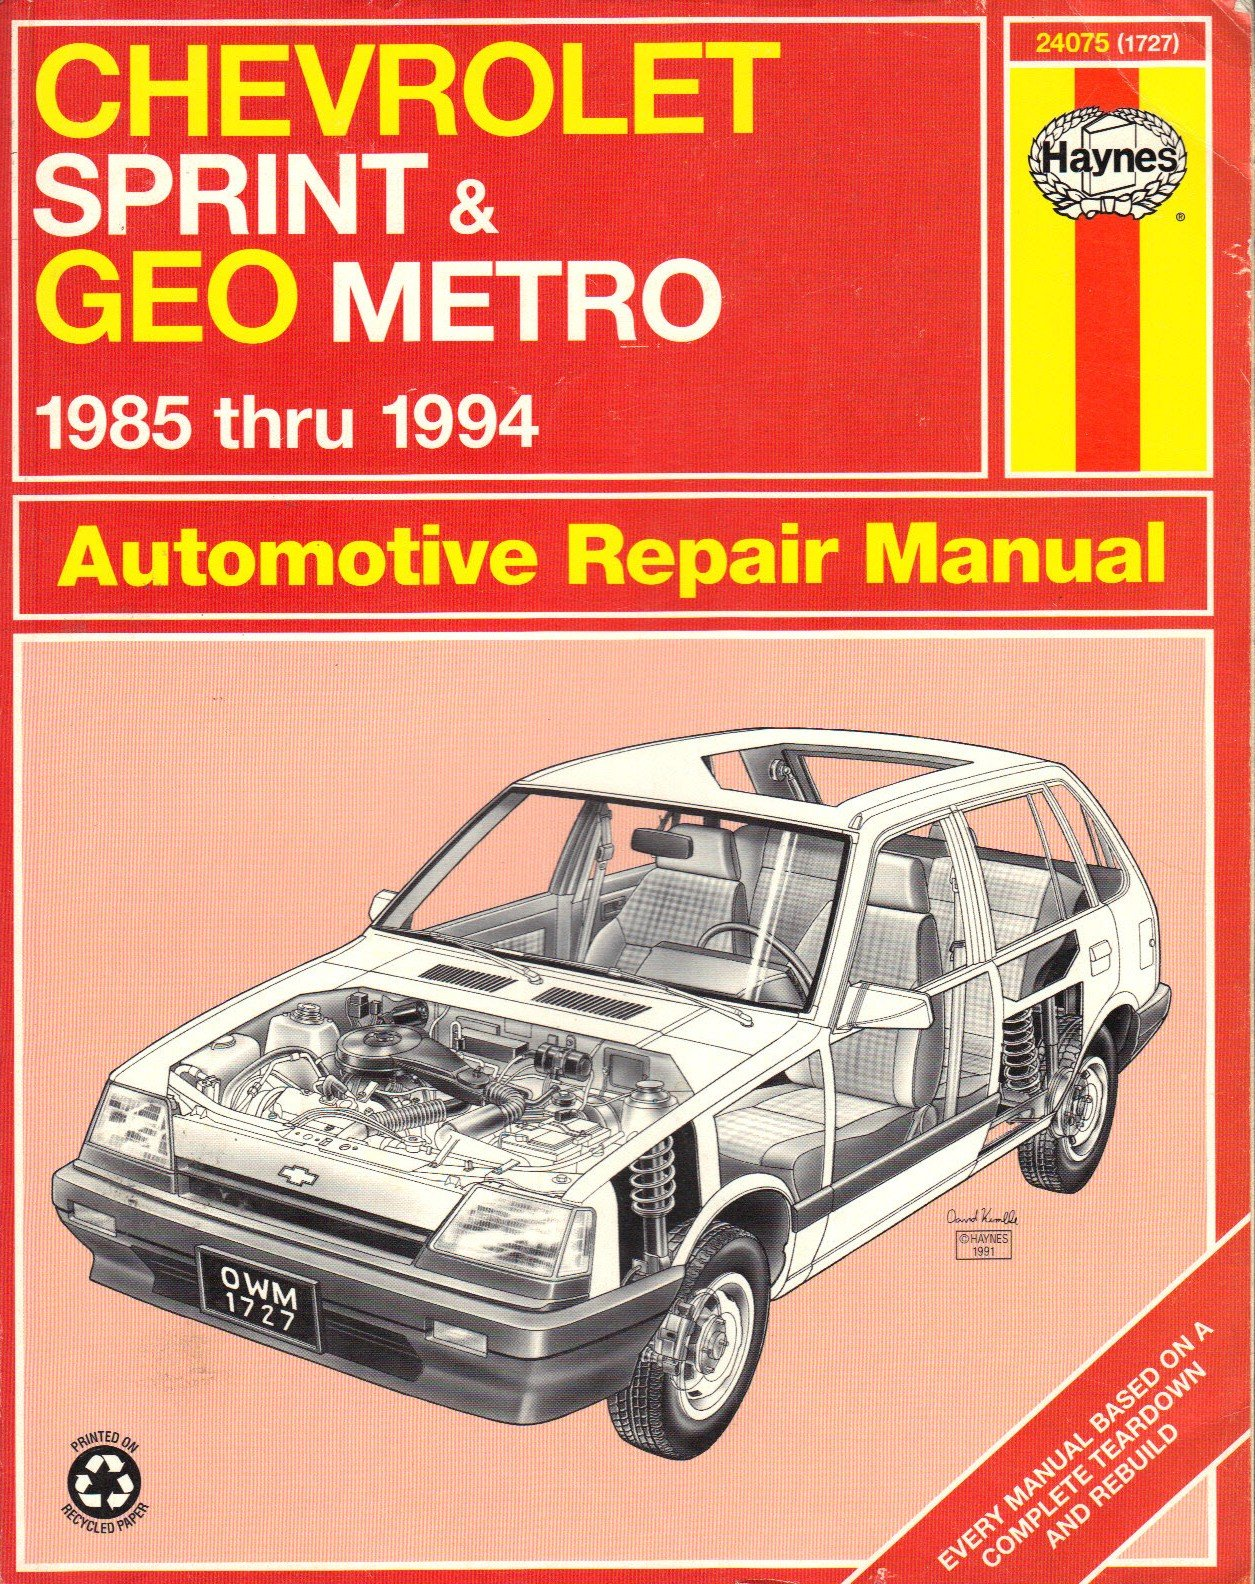 Chevrolet Sprint & Geo Metro Automotive Repair Manual 1985 Thru 1994  (Haynes Automotive Repair Manual Series, 1727): Larry Warren, John Harold  Haynes: ...